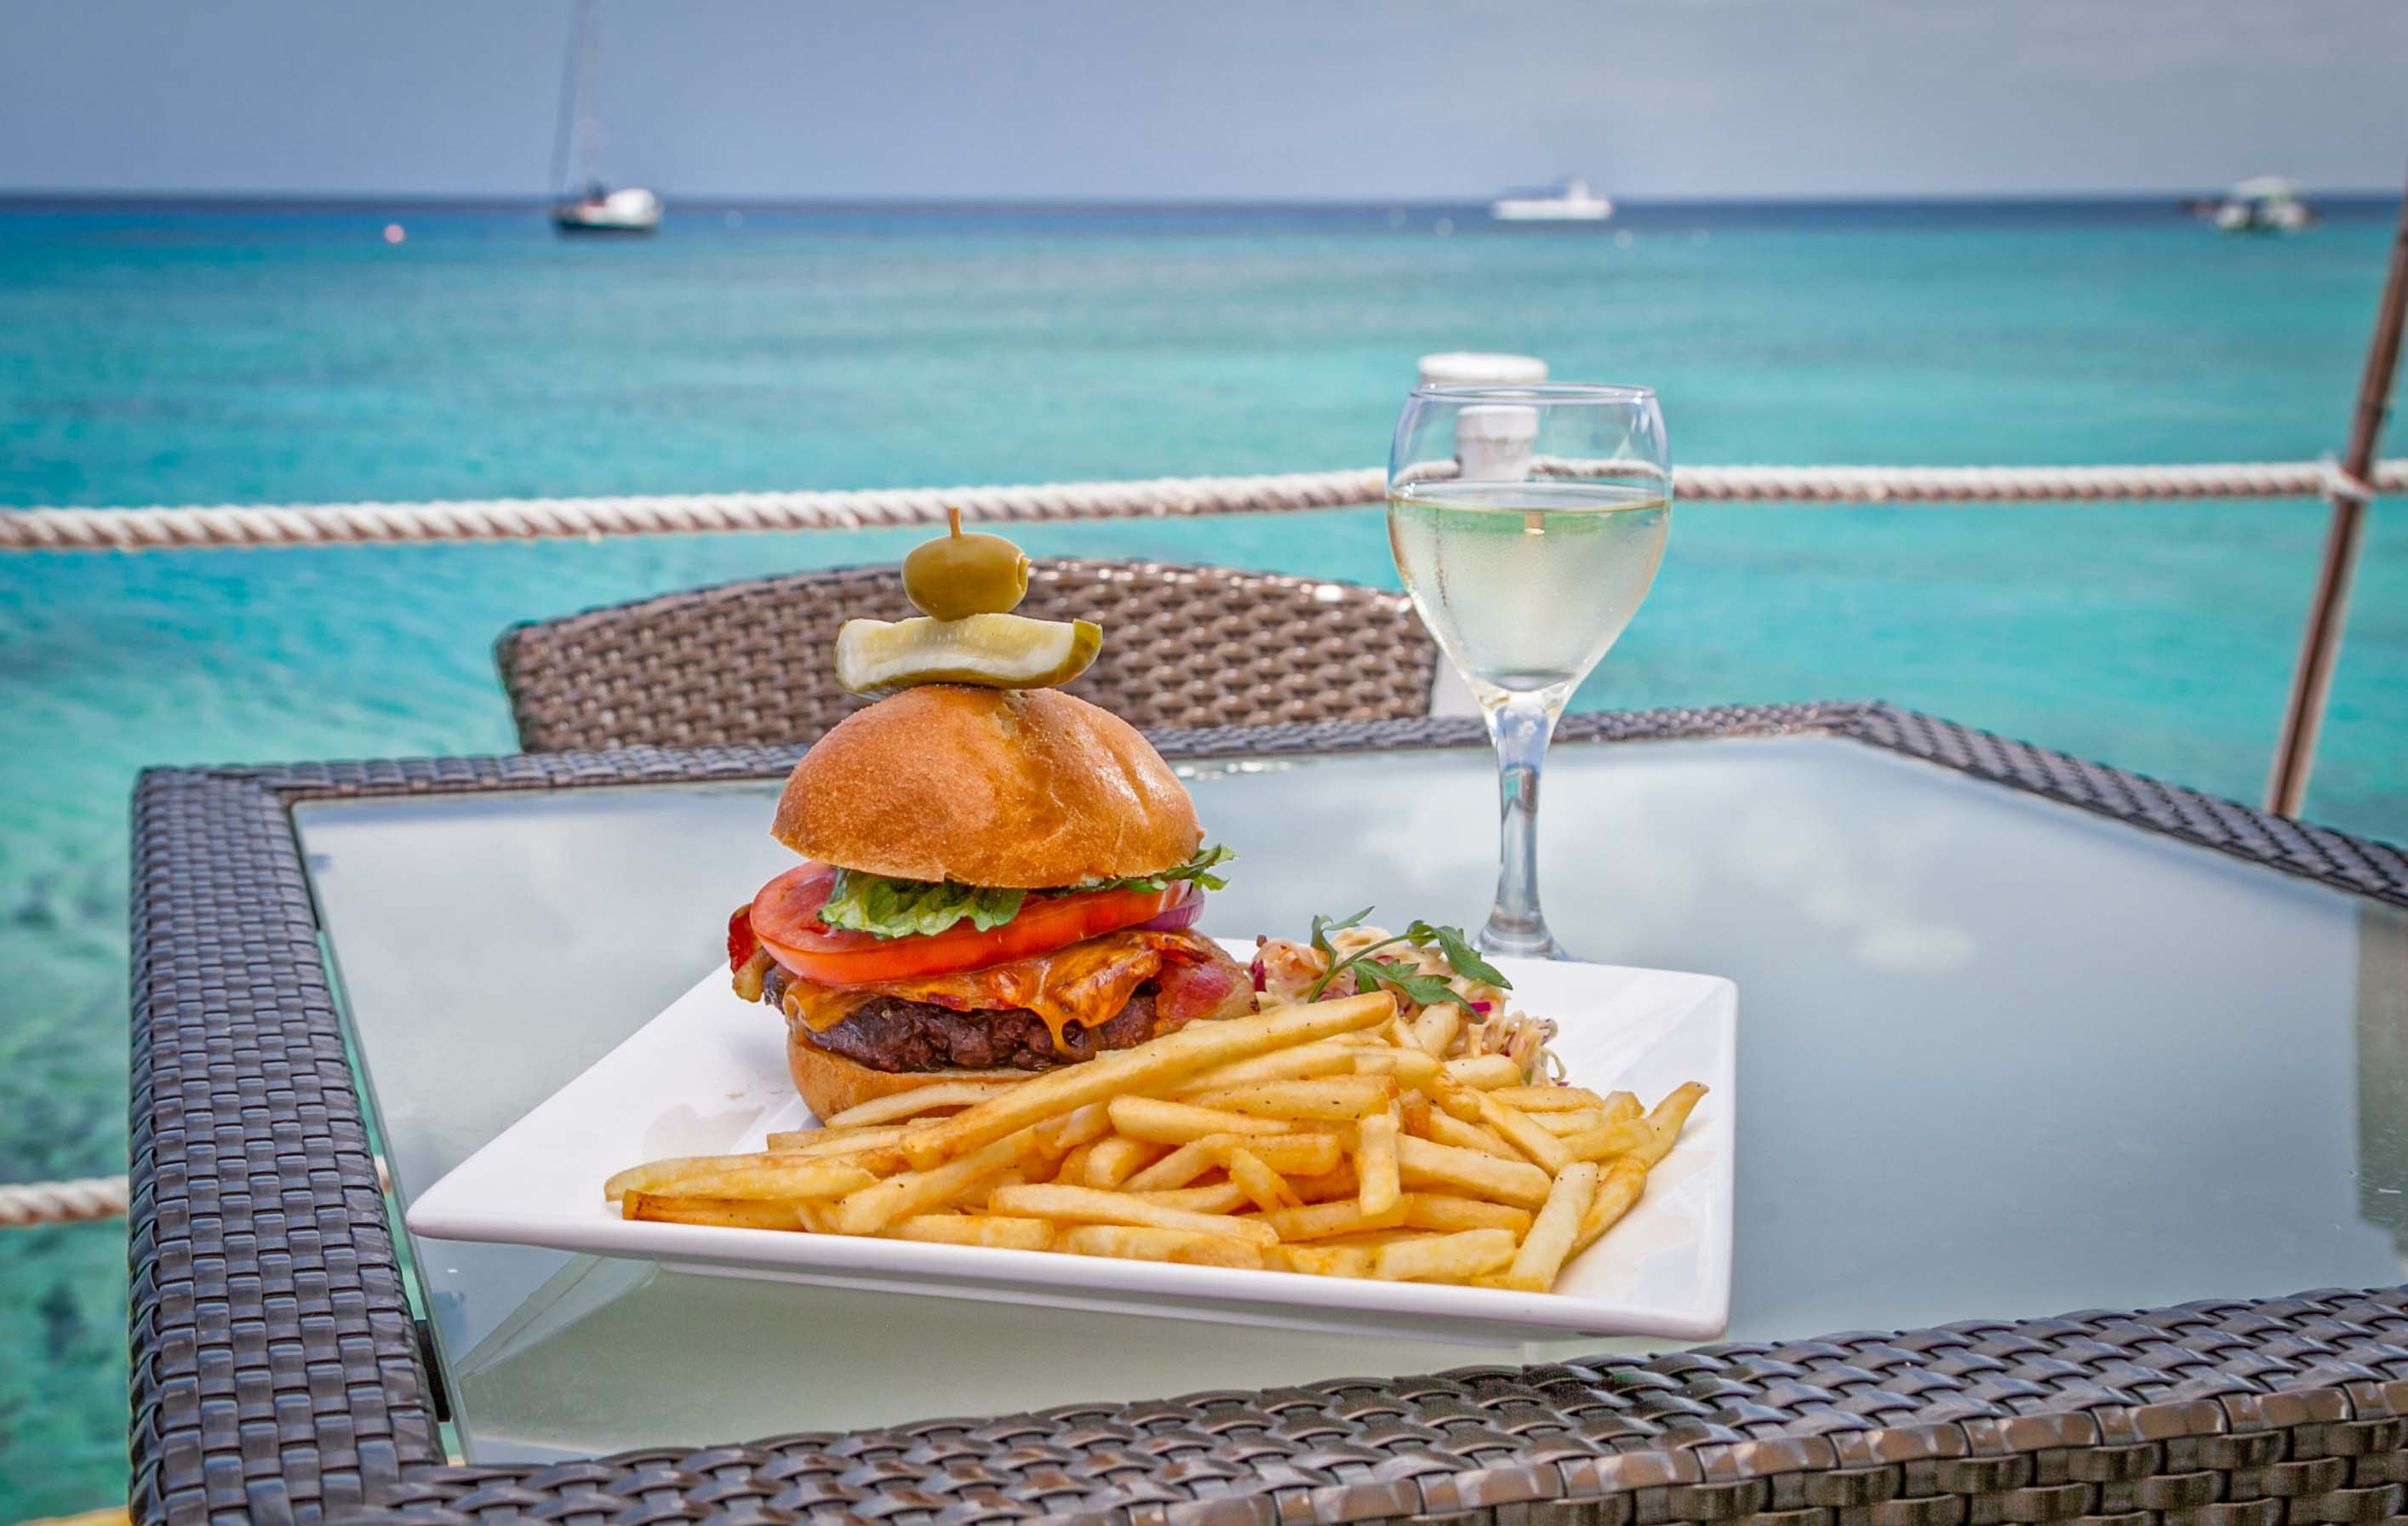 Burger and chips served at the waterfront restaurant